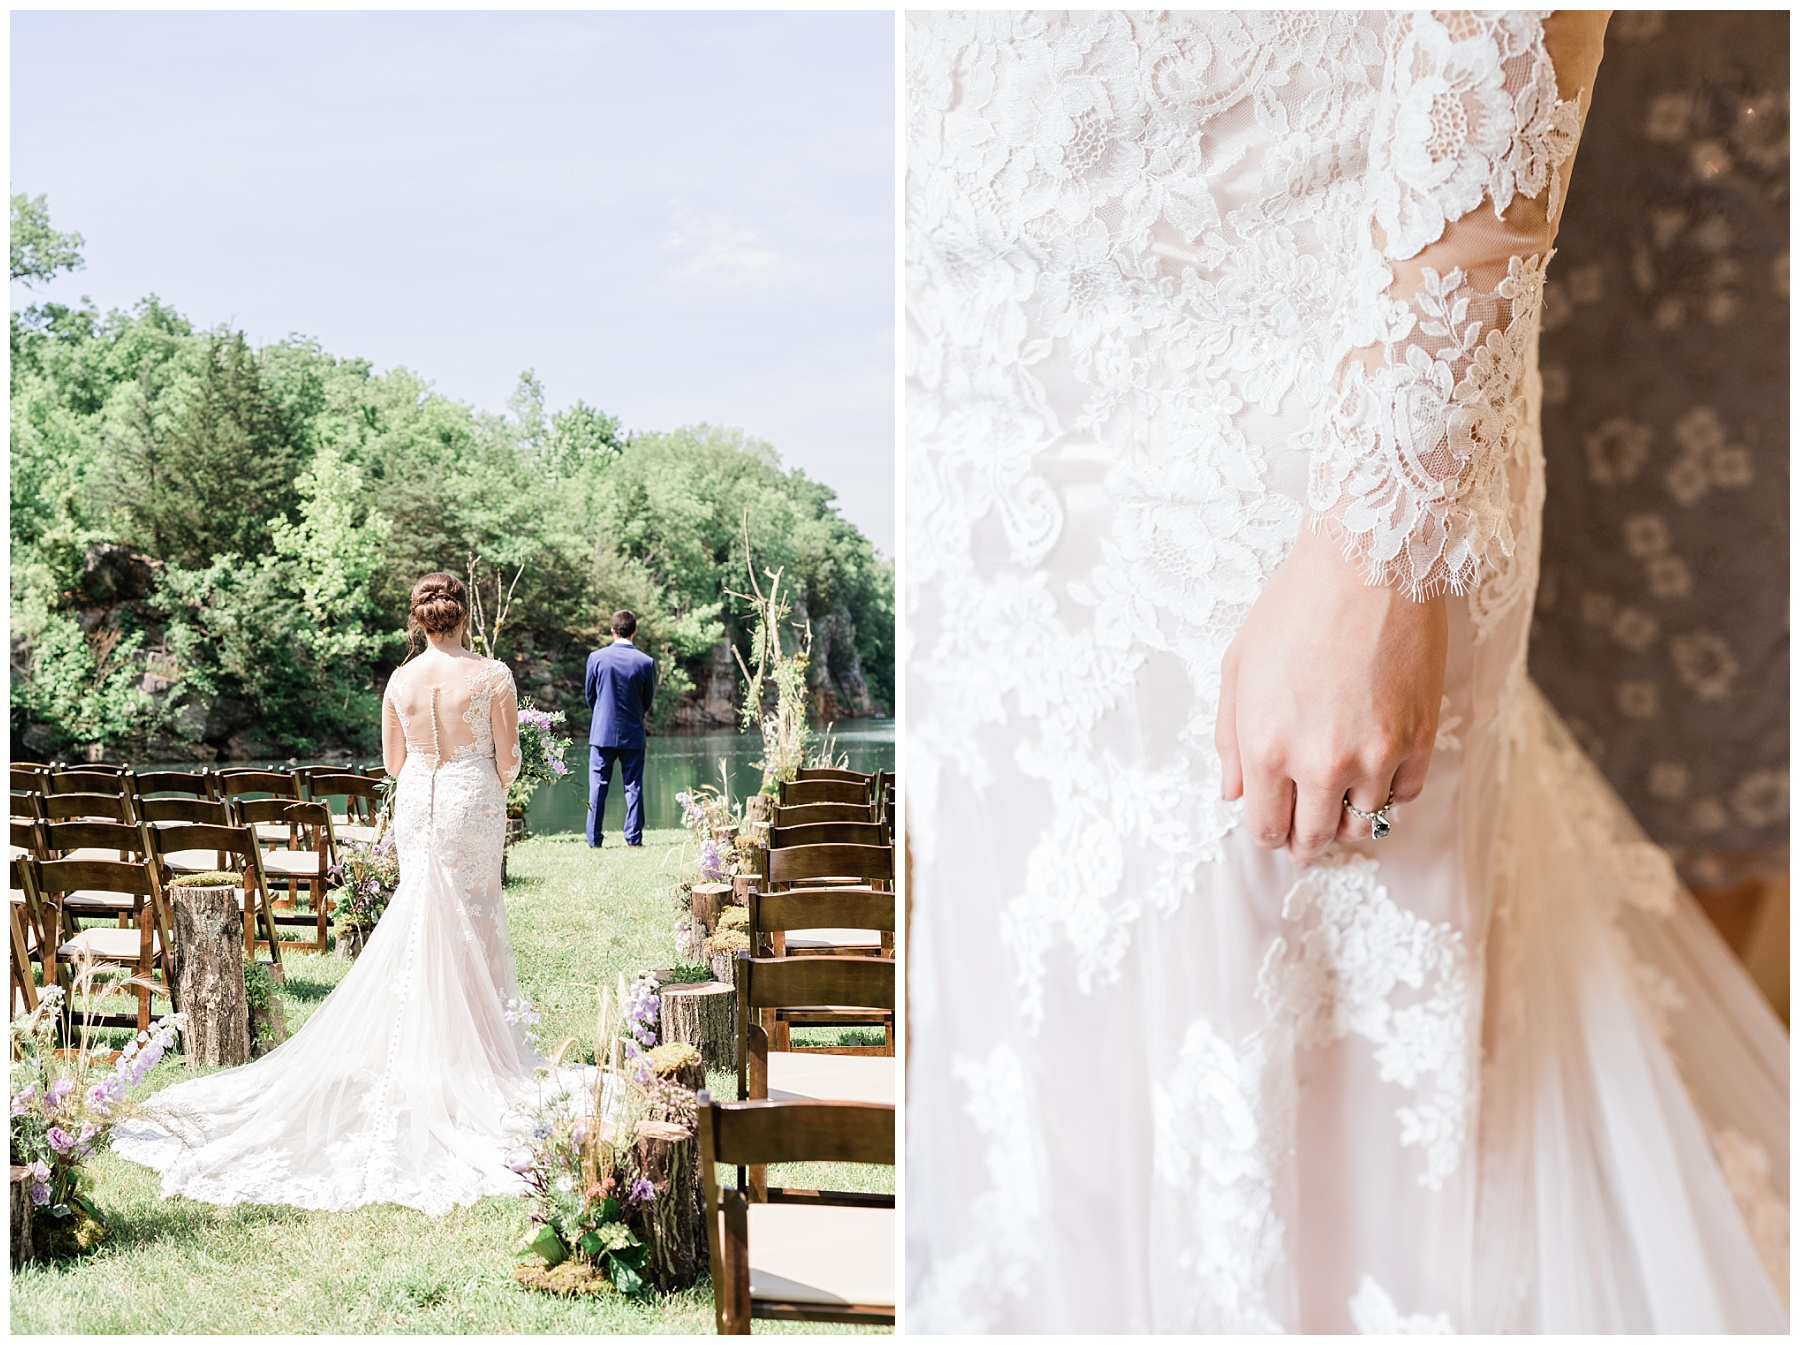 Intimate Mountain Hues Inspired Summer Wedding at Wildcliff Weddings and Events by Kelsi Kliethermes Photography Best Missouri and Maui Wedding Photographer_0040.jpg